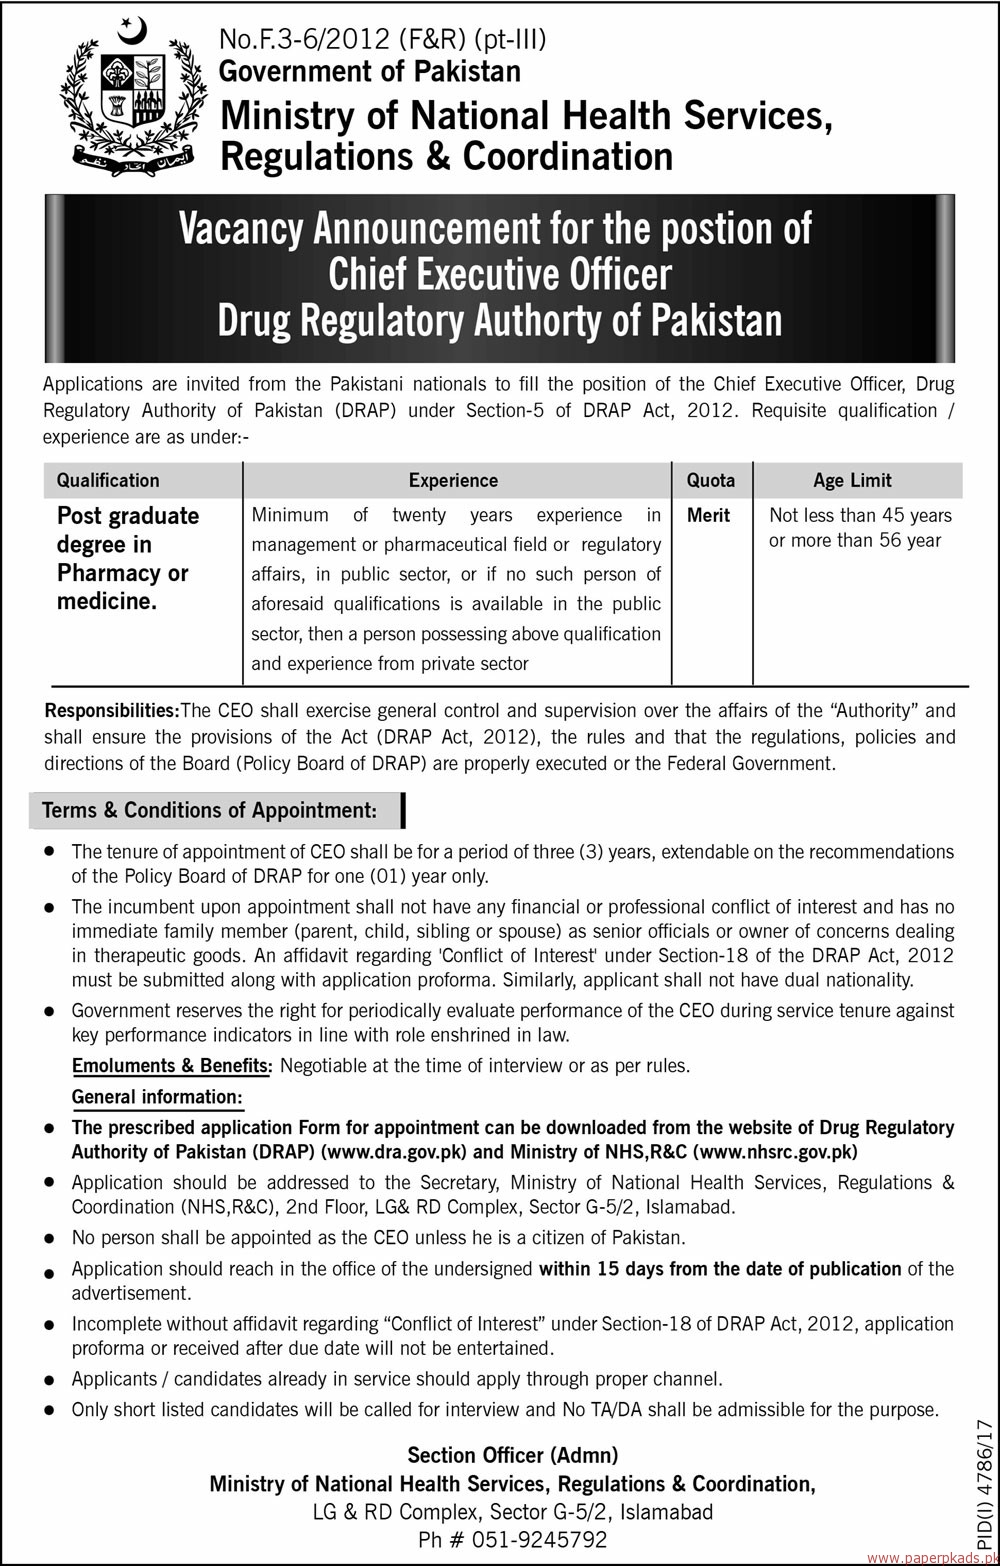 Government of Pakistan - Ministry of National Health Services Regulations & Coordination Jobs 2018